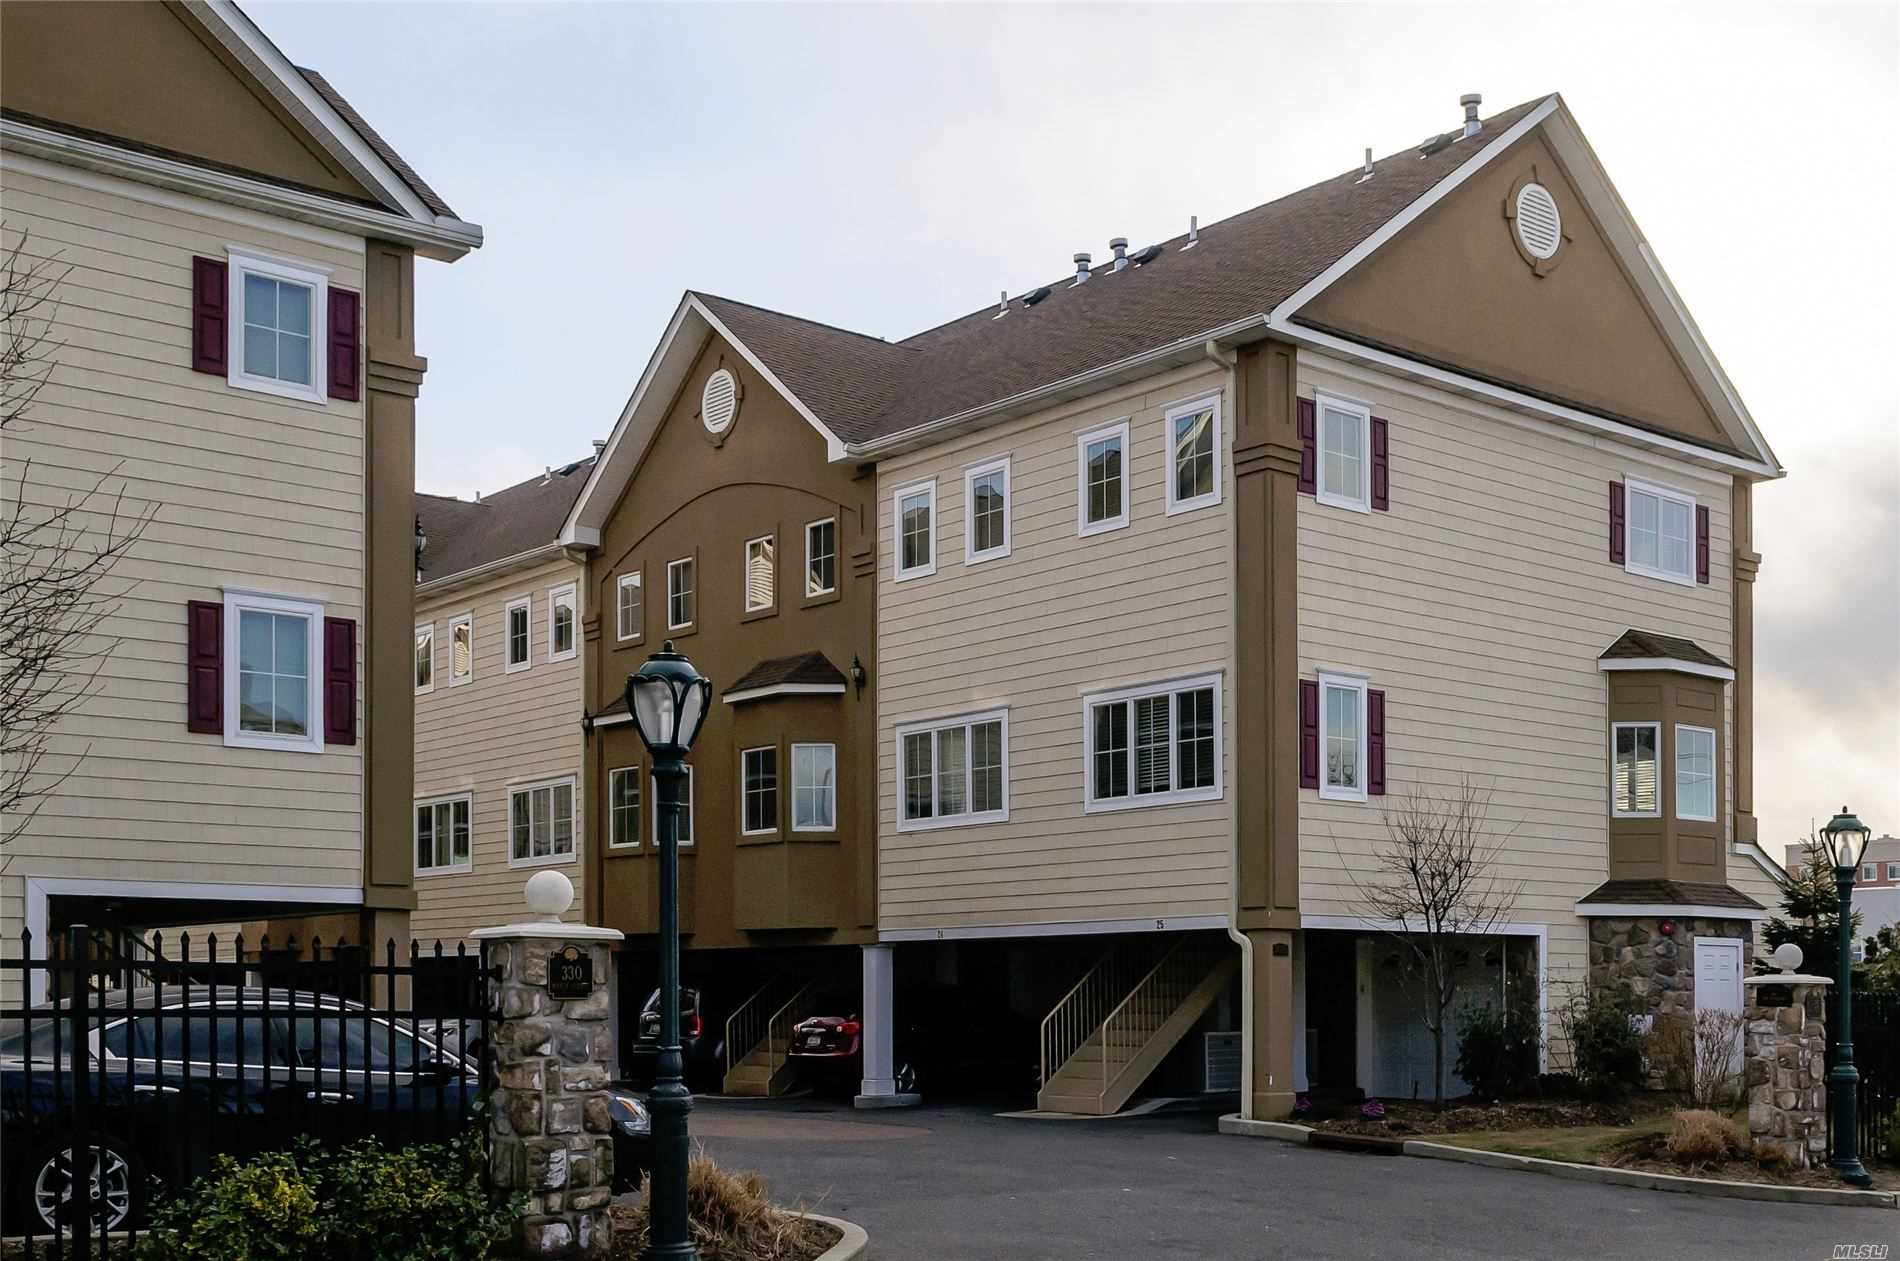 Luxury Townhouse Community. One Bedroom with One Car Attached Garage. A Must See! High Ceilings, Top of the Line Kitchen, Bedroom Suite on the 2nd Floor with Bath and large Closet, also have laundry in the unit-a must see!! Mid location/AAA